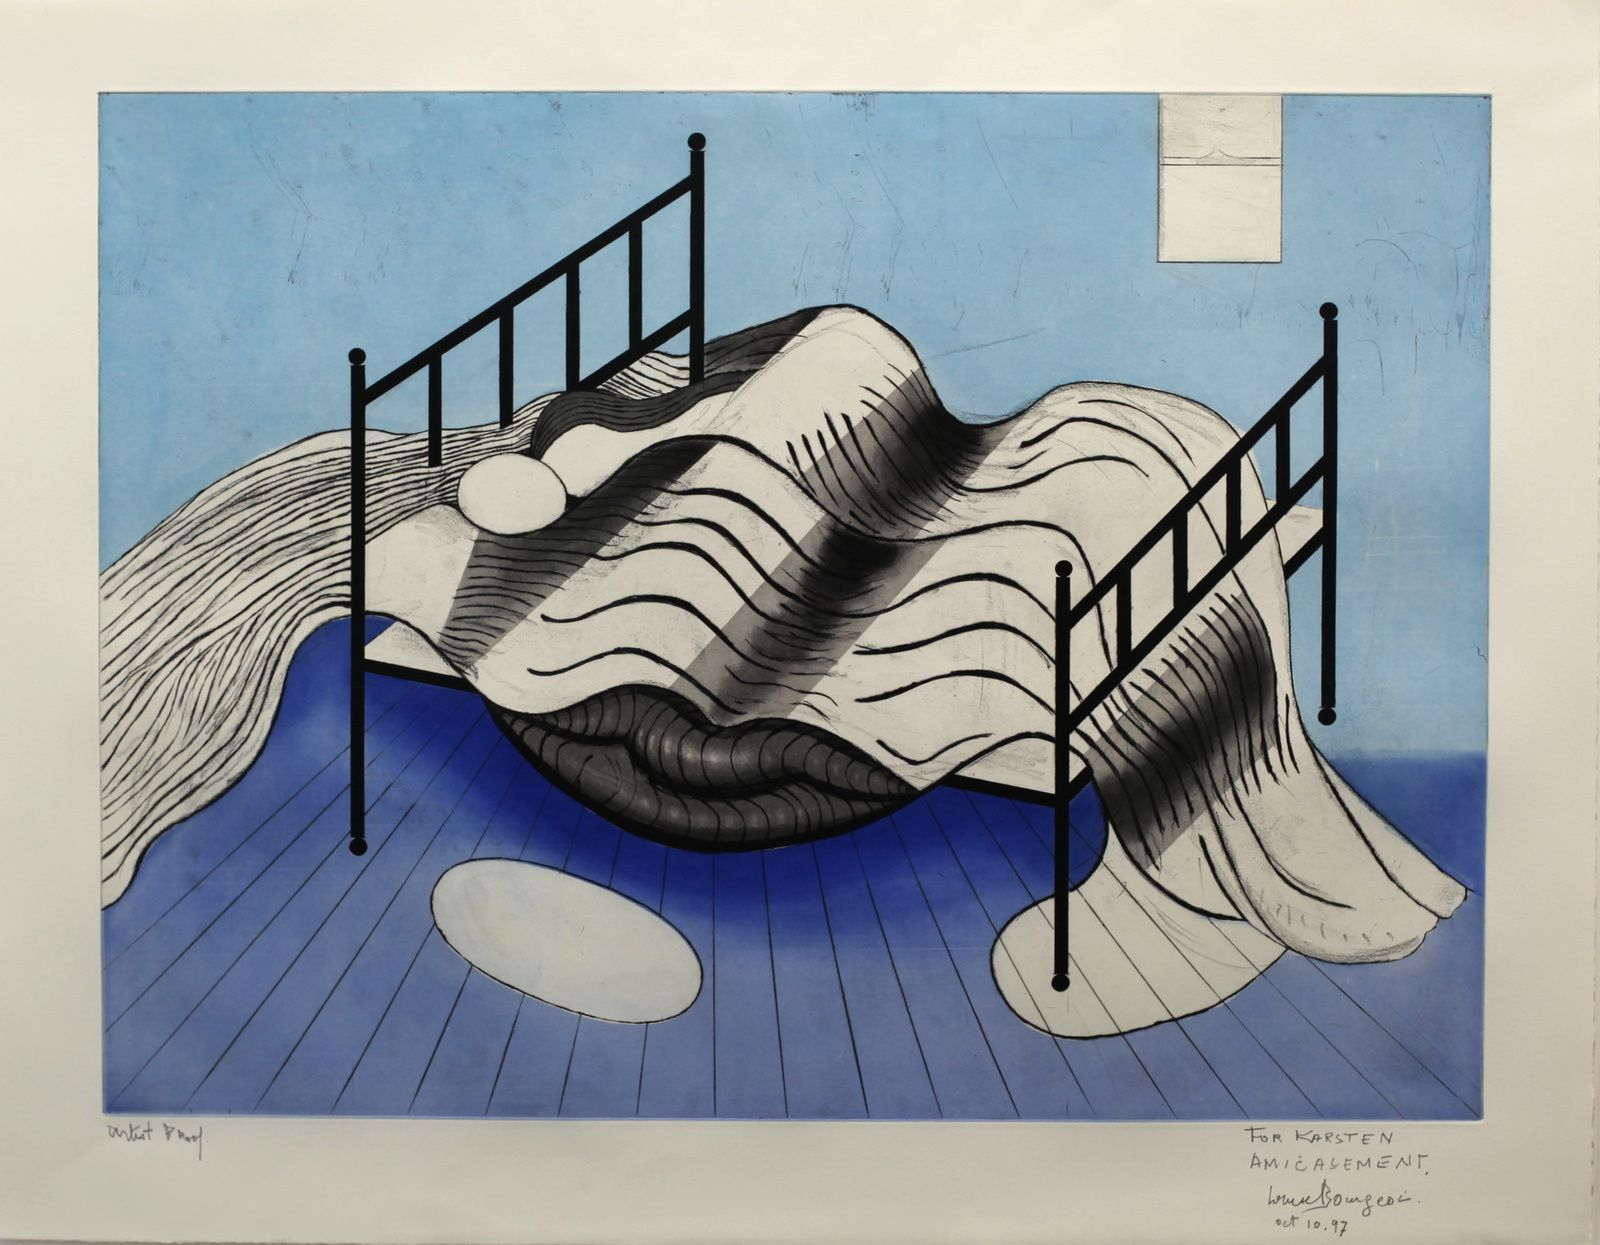 """Untitled (Le lit, gros Edredon, bleu)"", 1997 de Louise BOURGEOIS - Courtesy Galerie Karsten Greve © Photo Éric Simon"